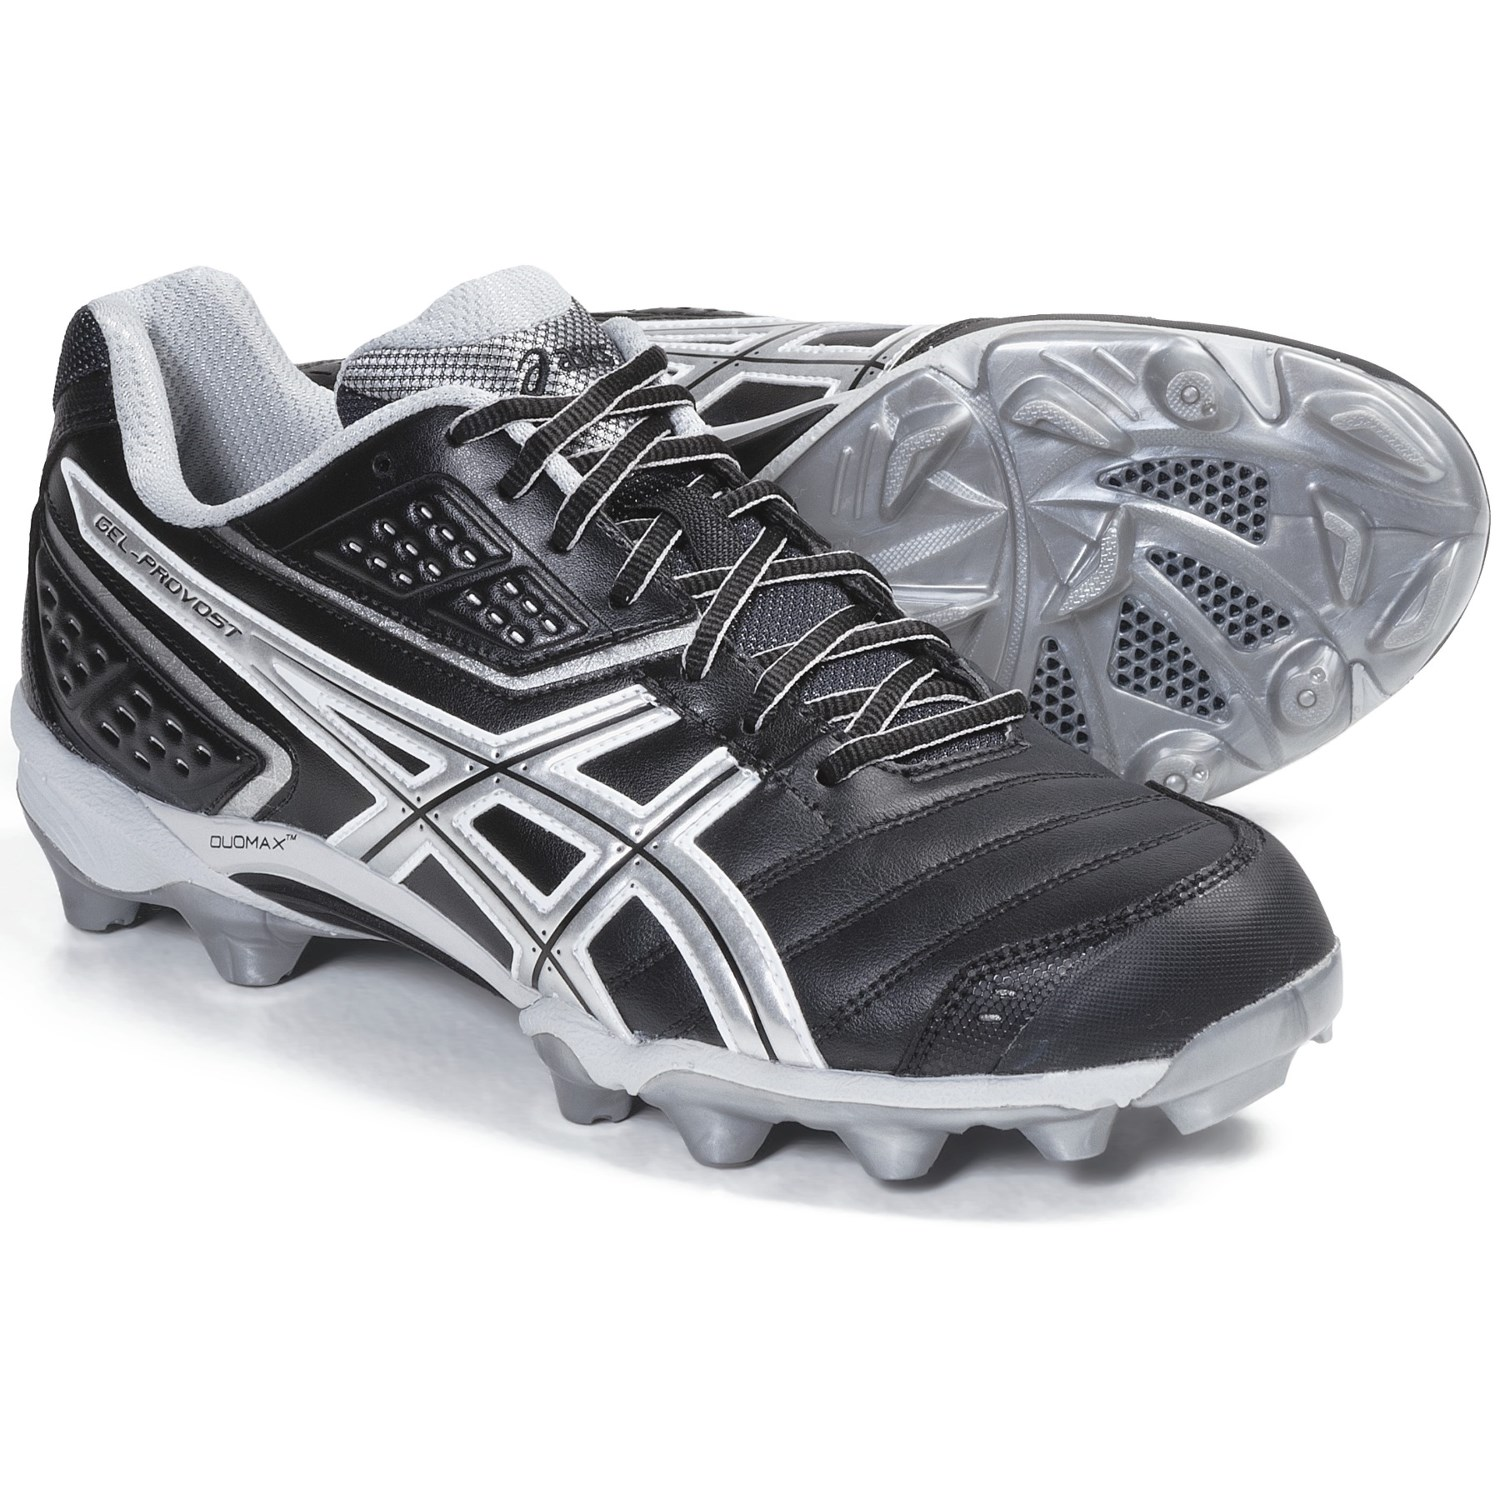 asics-gel-provost-low-lacrosse-shoes-for-men-in-black-silver-white~p